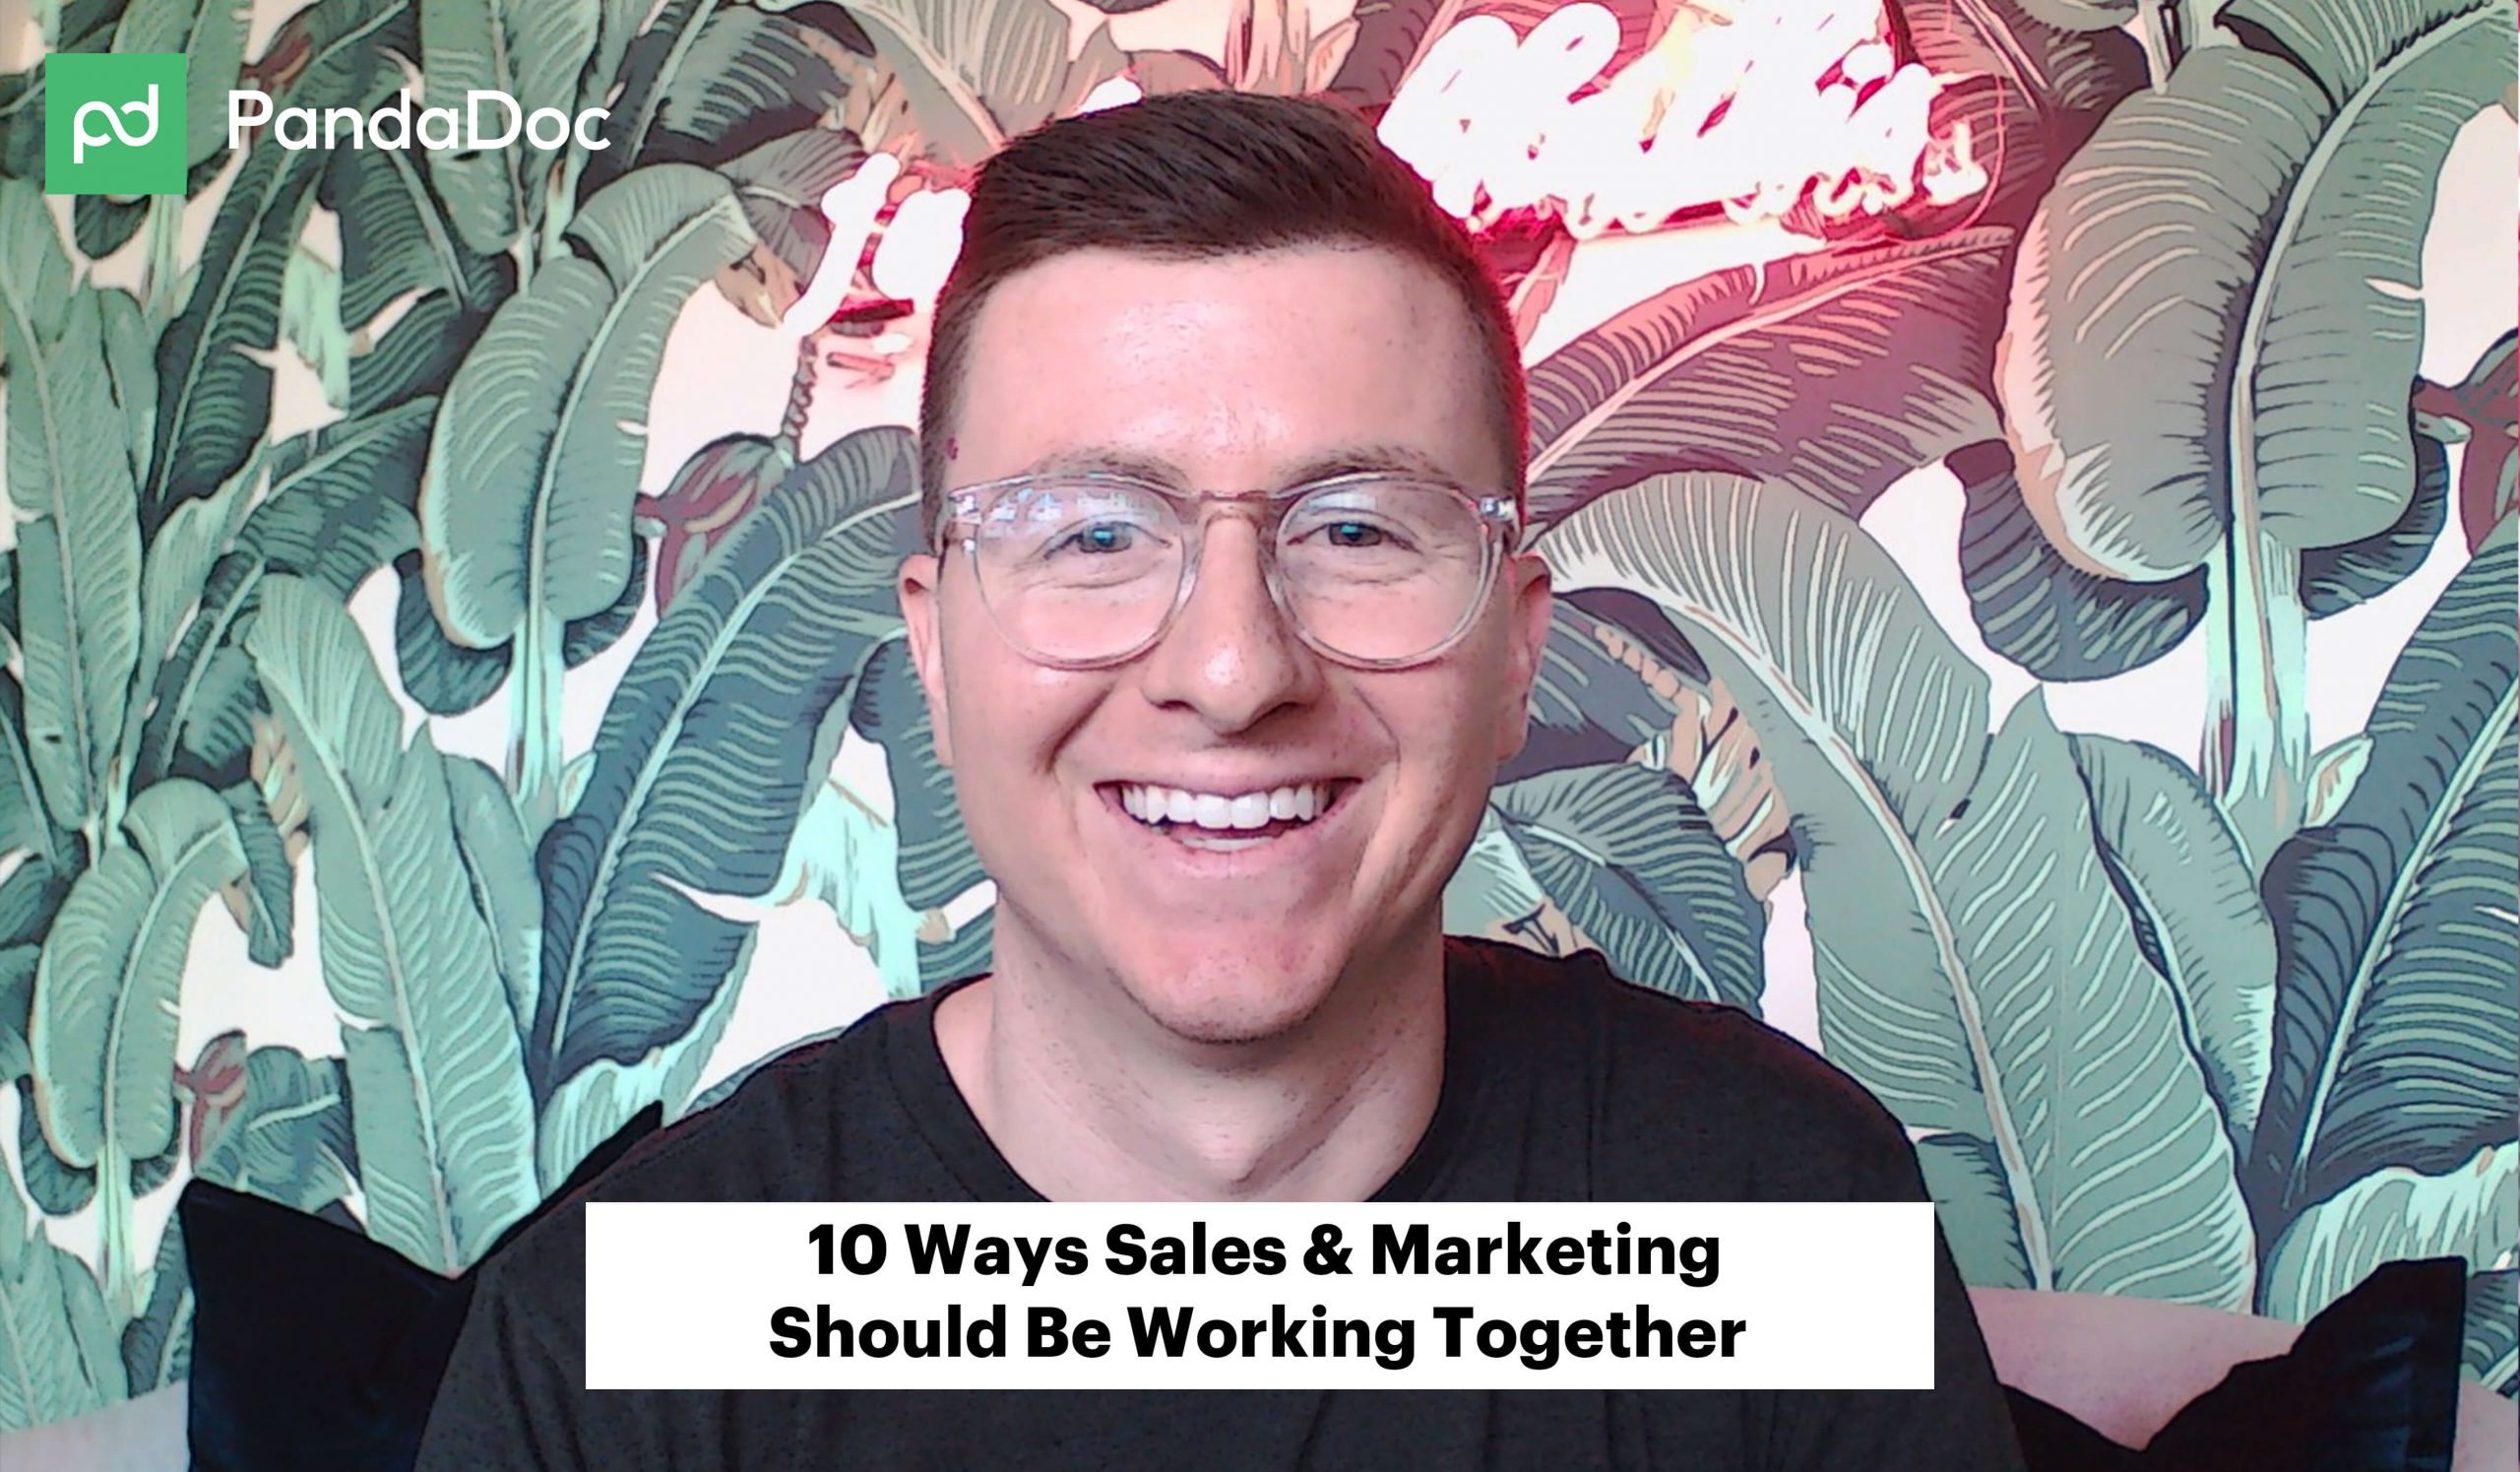 [Video] 10 ways sales and marketing should be working together